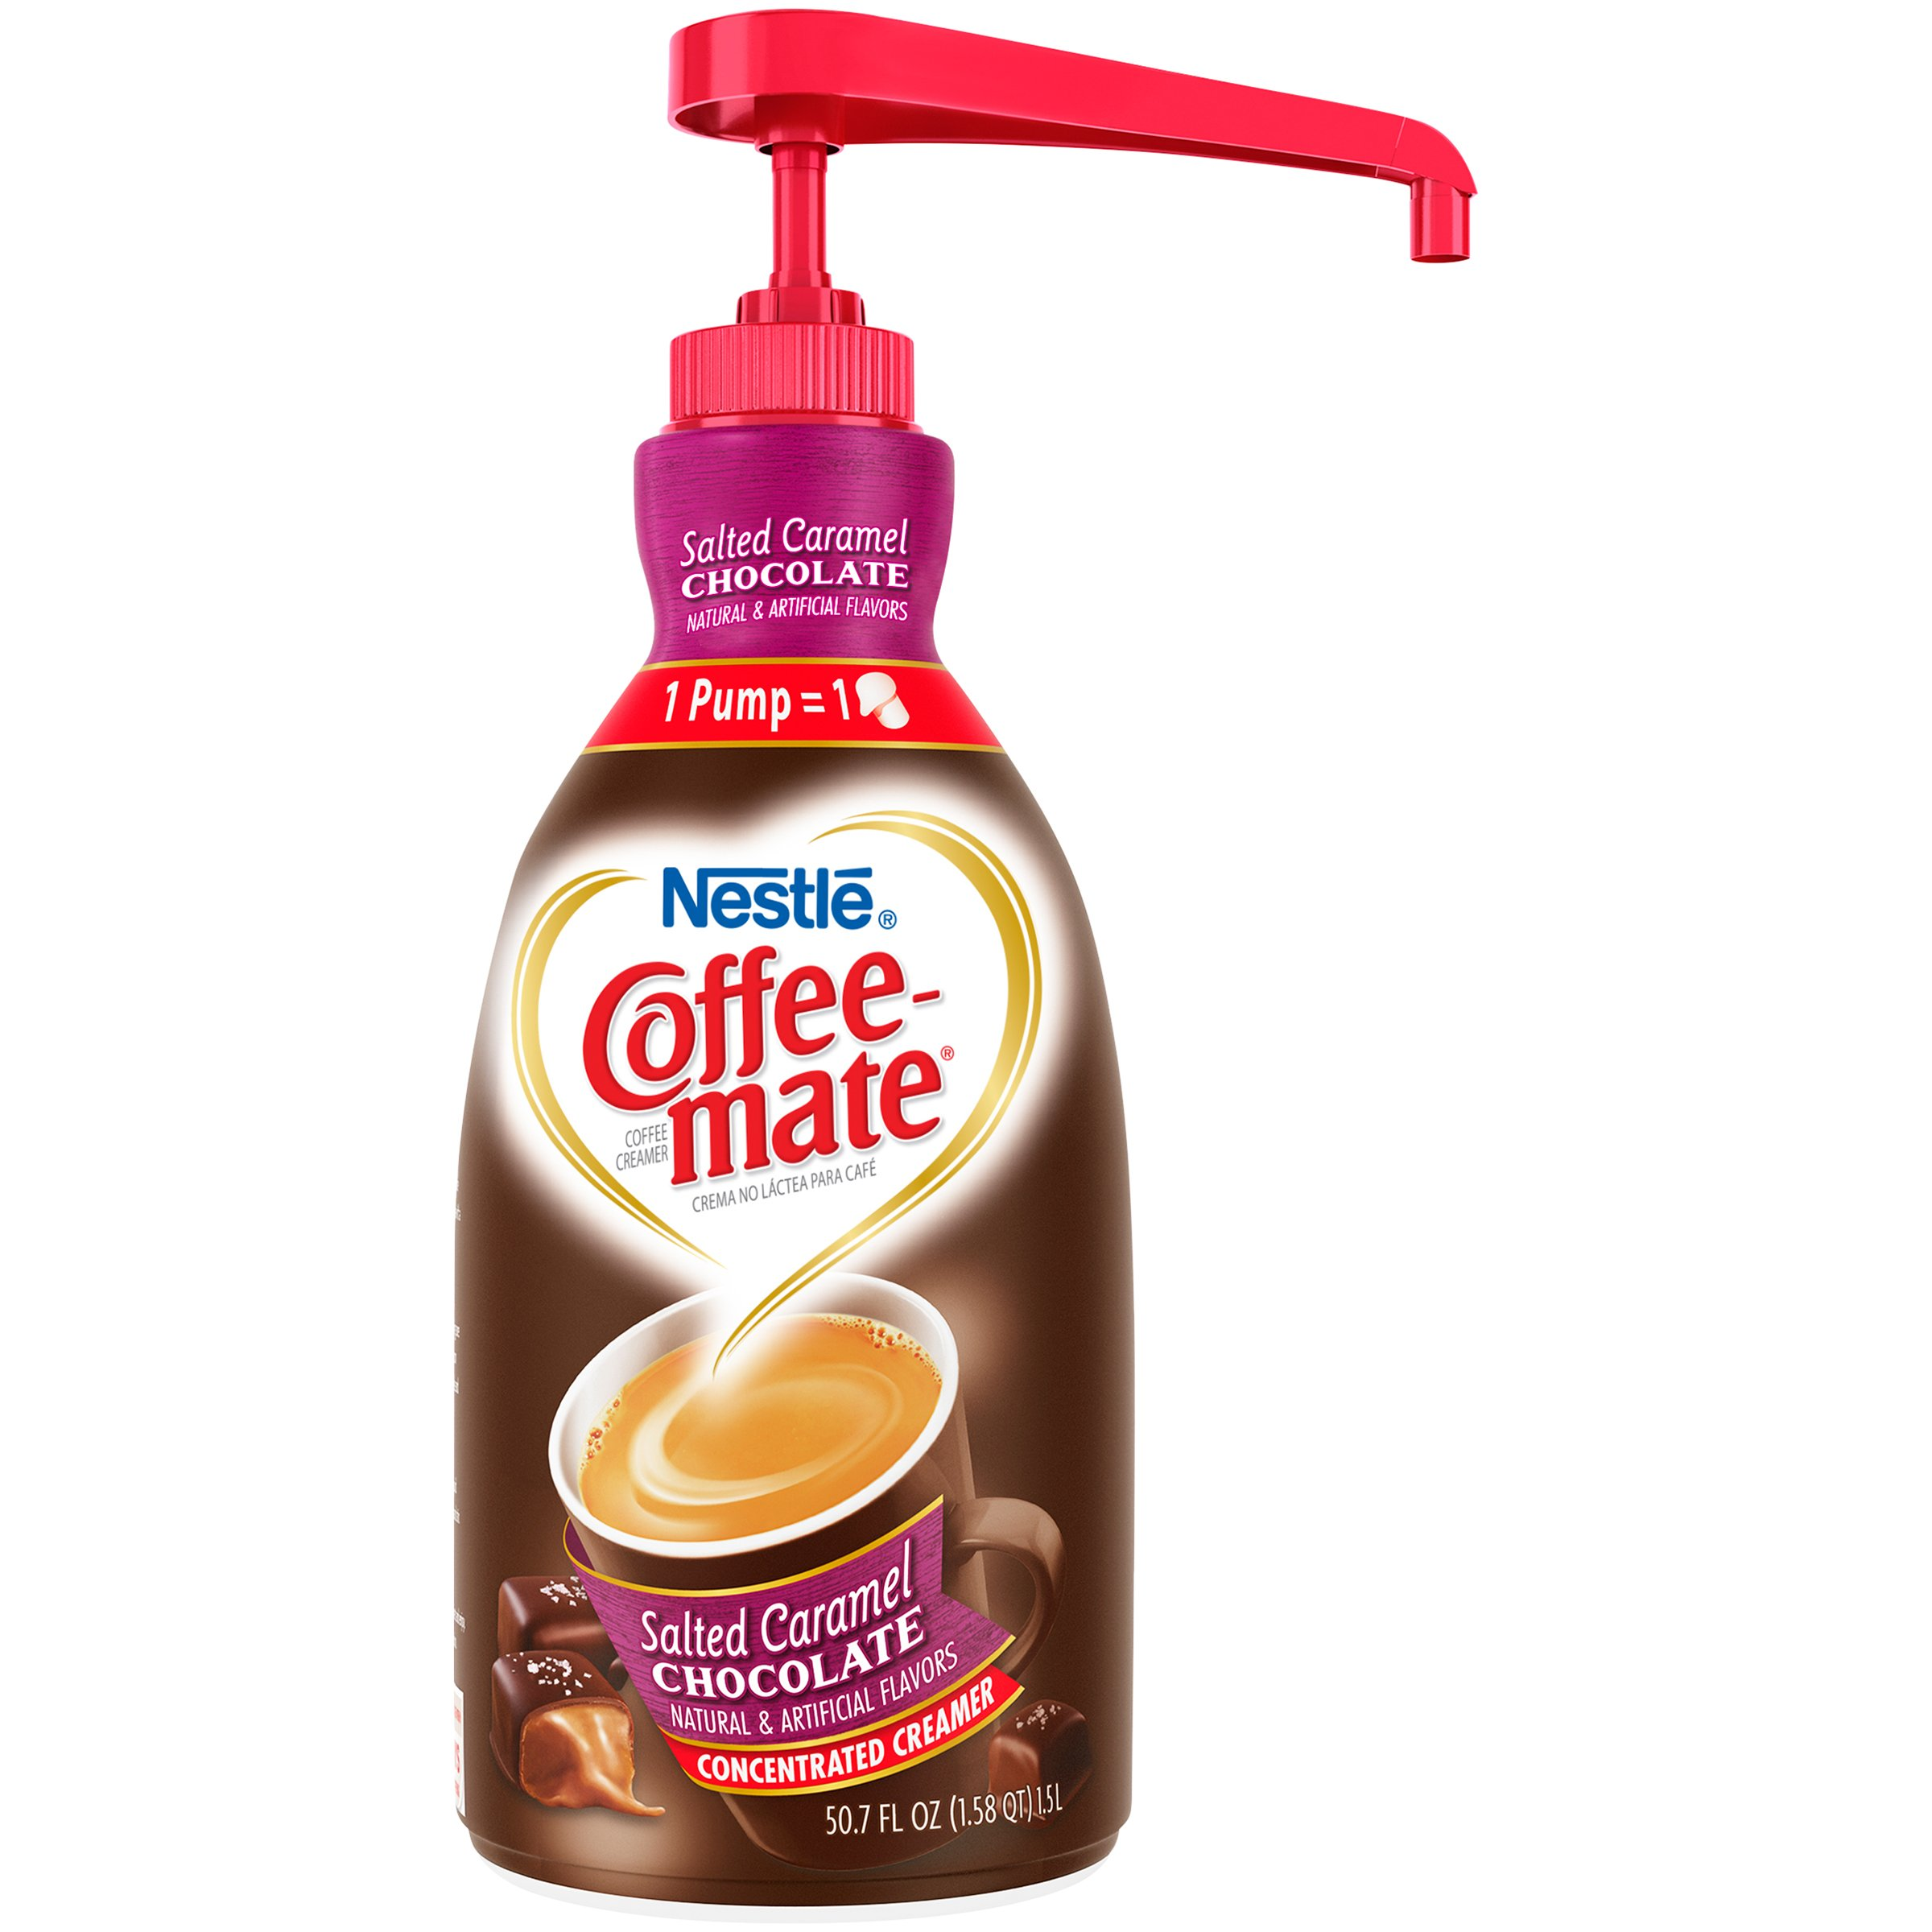 Nestle Coffee-mate Coffee Creamer, Salted Caramel Chocolate, liquid pump bottle, 50.7 Fl. Oz (Pack of 1) by Nestle Coffee Mate (Image #1)